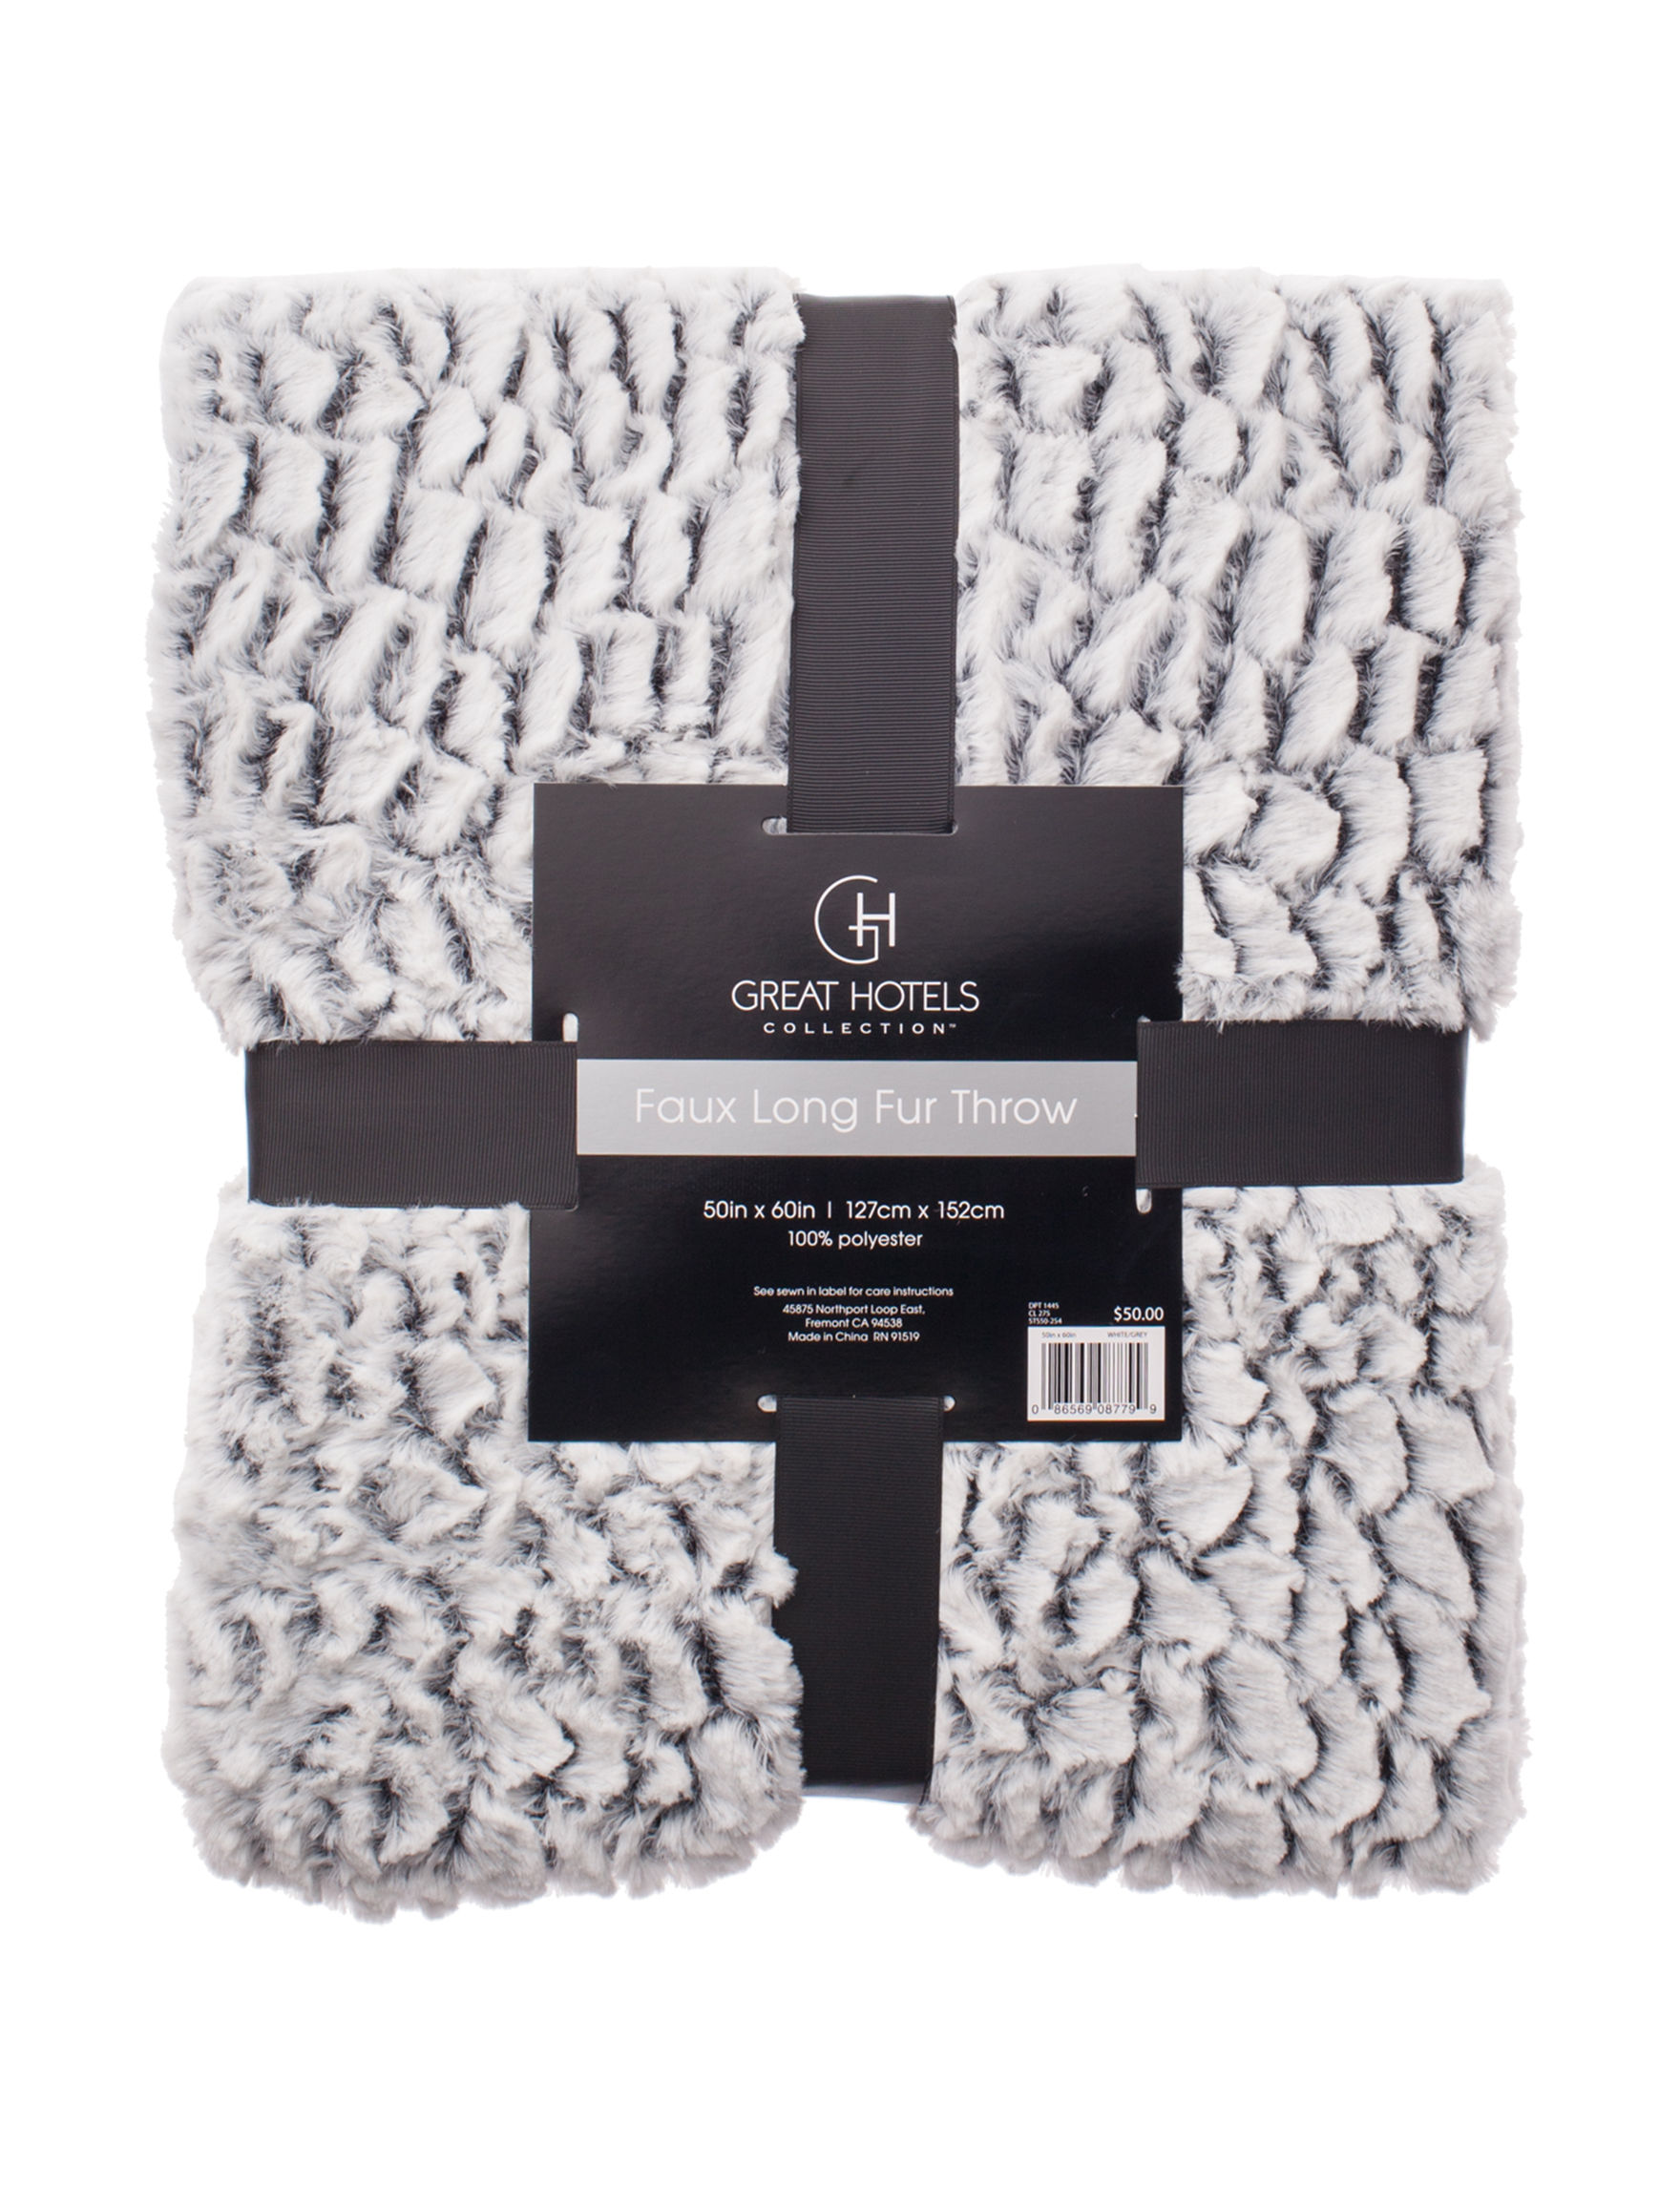 Great Hotels Collection White Blankets & Throws